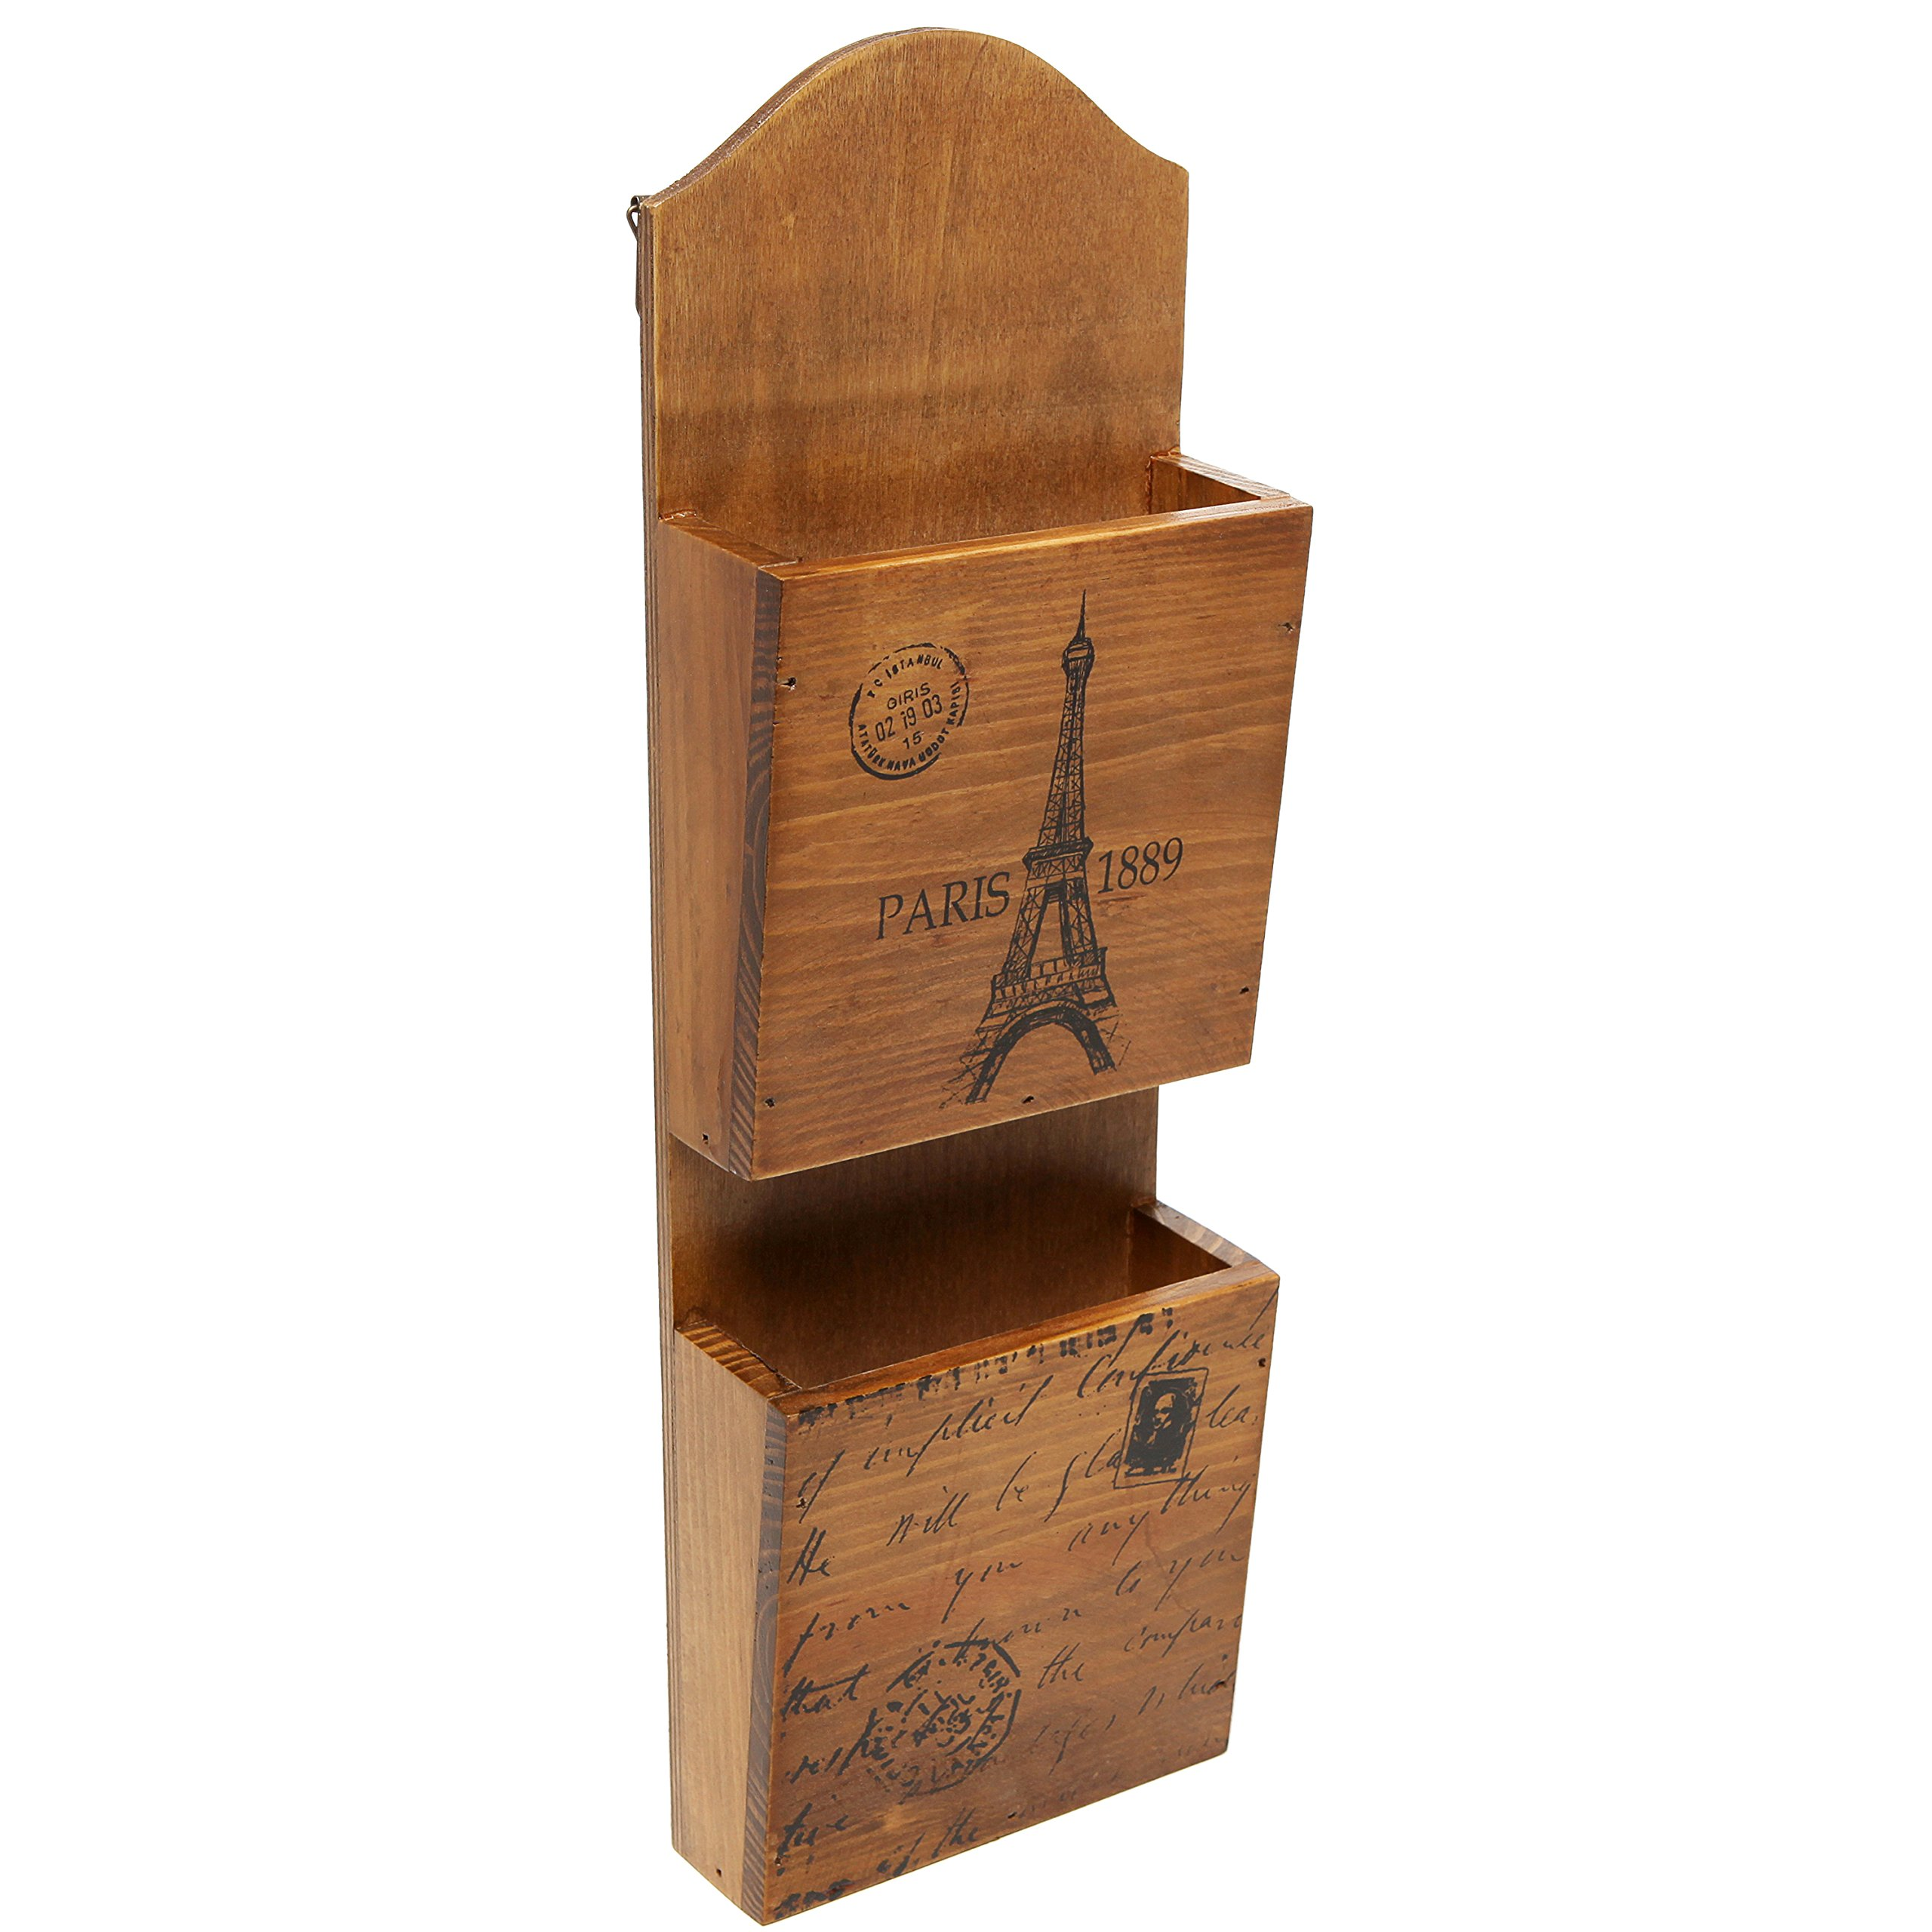 Classic Vintage French Paris Eiffel Tower Rustic Wood 2 Tier Hanging Mail Sorter Letter Organizer Holder